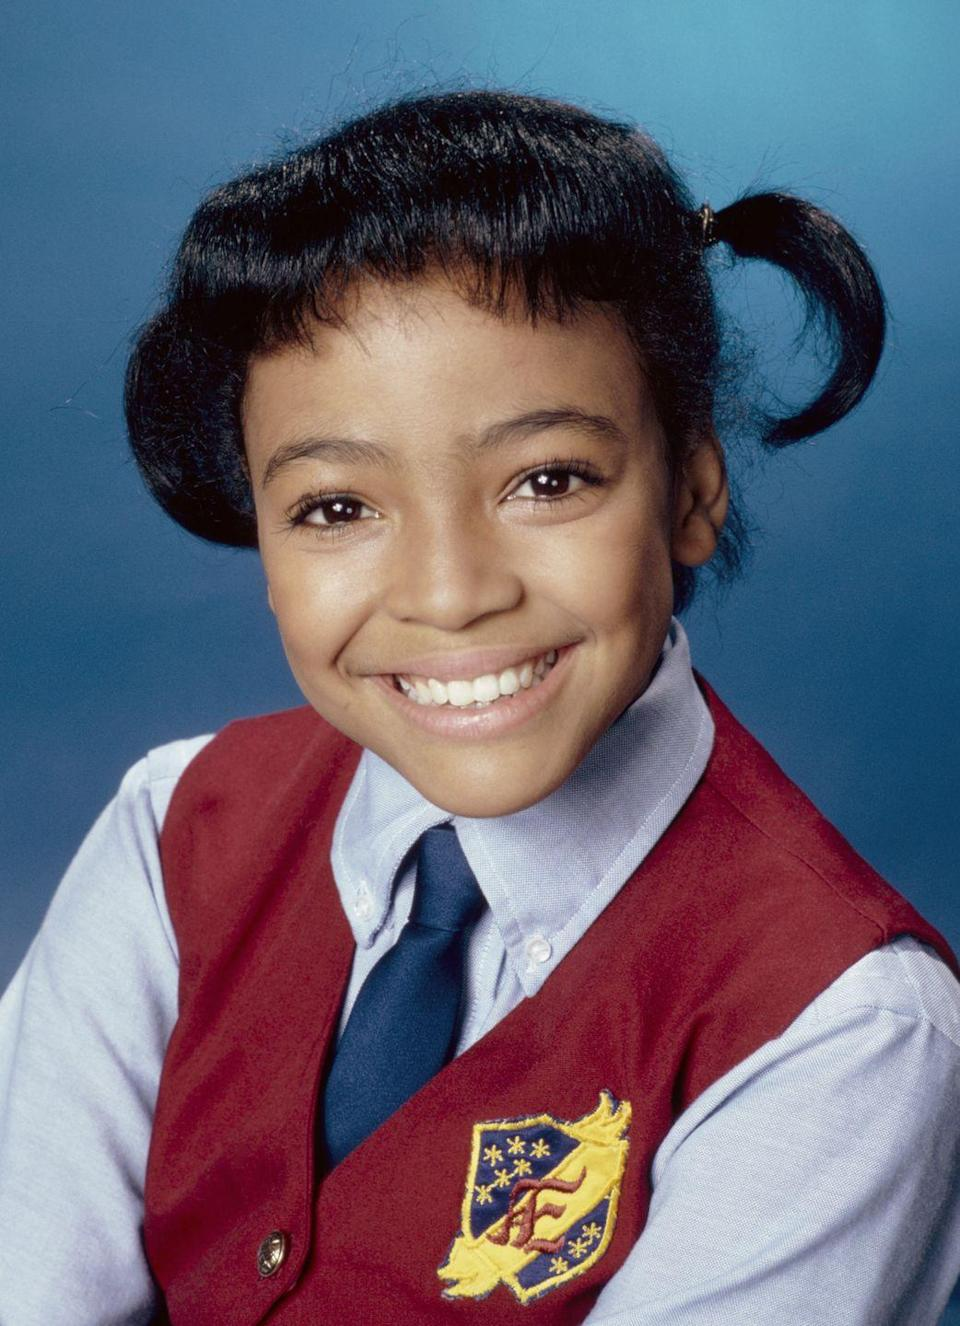 <p>Gossipy Dorothy, a.k.a. Tootie, from <em>The Facts of Life</em> made us all fall in love with rollerskates and pigtails. Fun fact: Kim Fields actually had to wear braces until 1985, so the ones she wore in earlier seasons were totally real.<br></p>